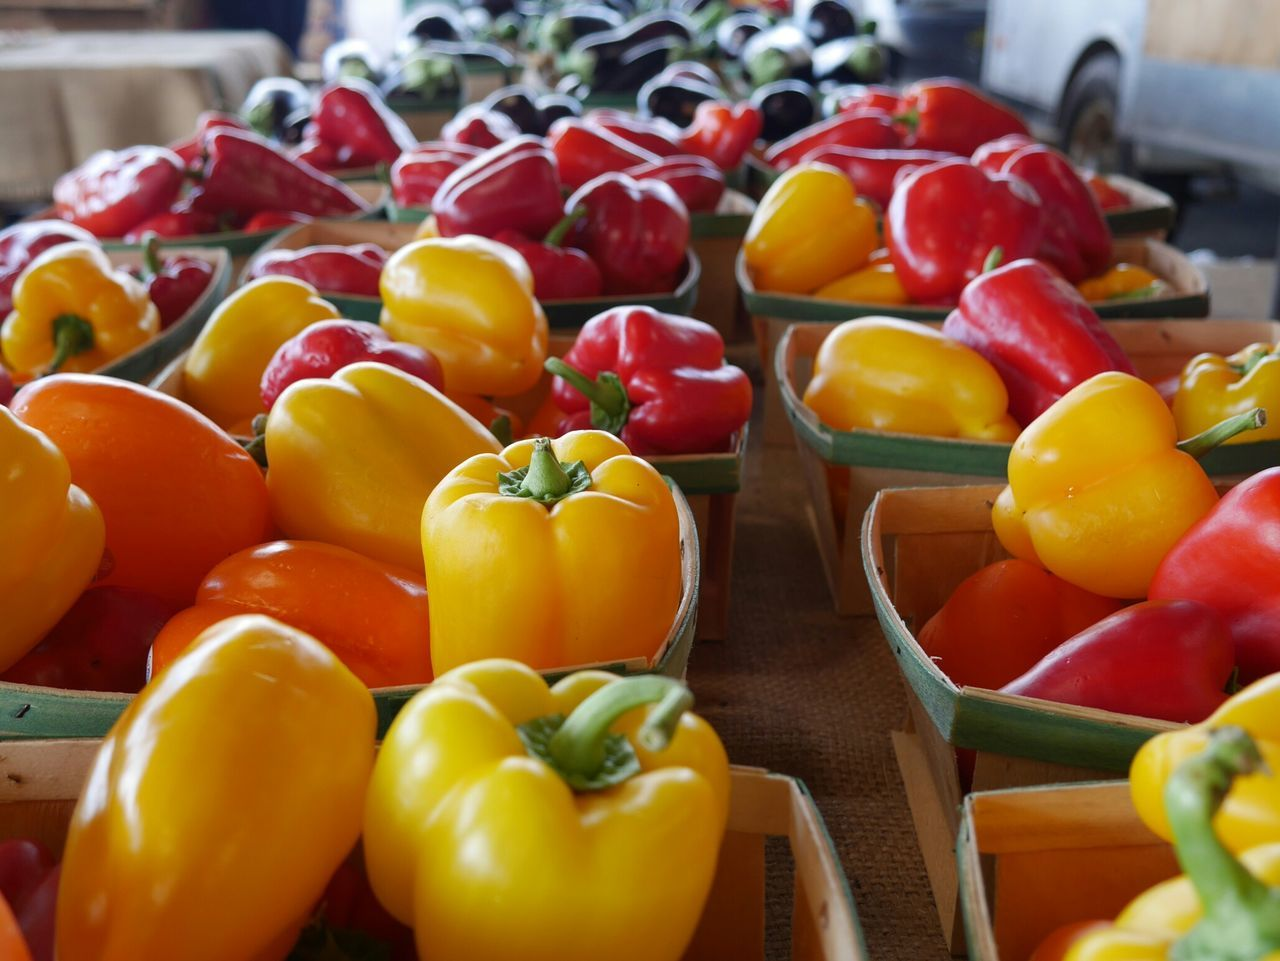 Freshness Retail  Healthy Eating Food Market Market Stall Yellow Fruit Close-up Farmer's Market Red Bell Pepper EyeEmNewHere